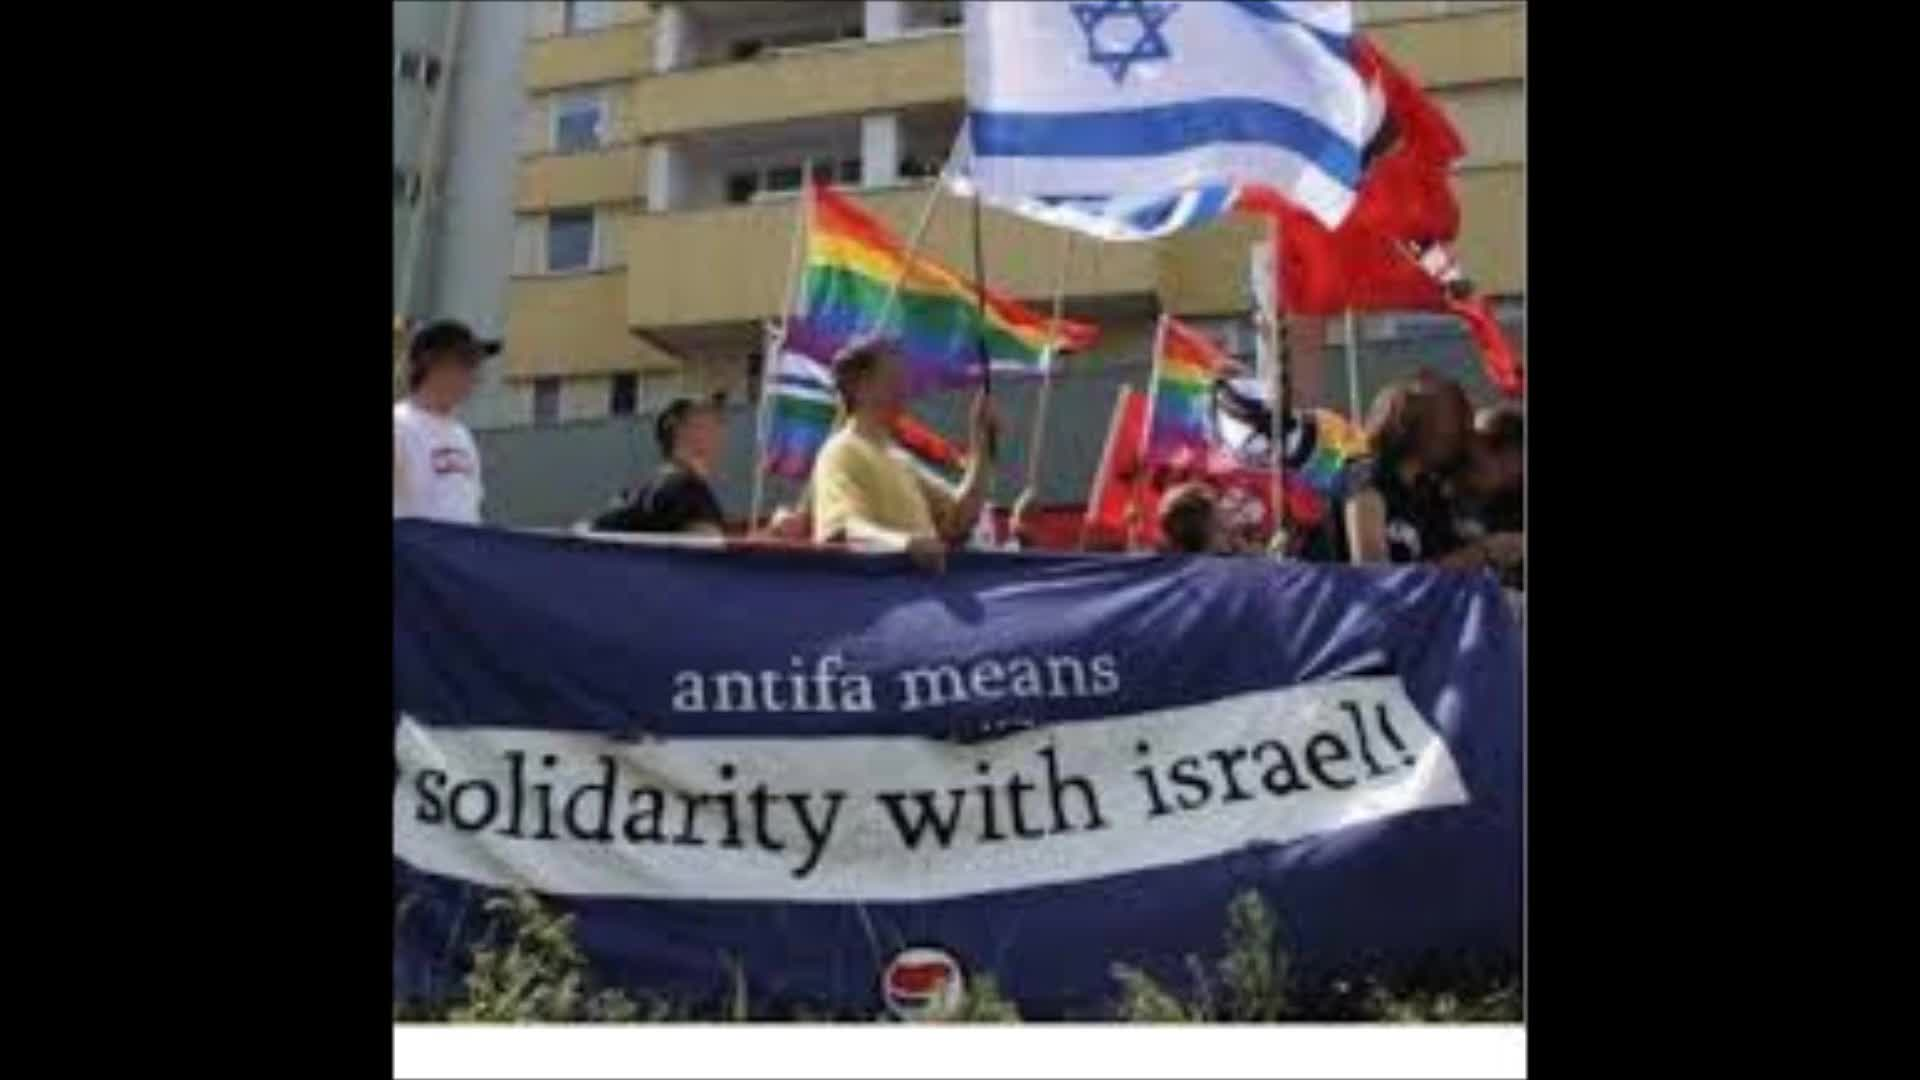 ANTIFA means solidarity with Israel.